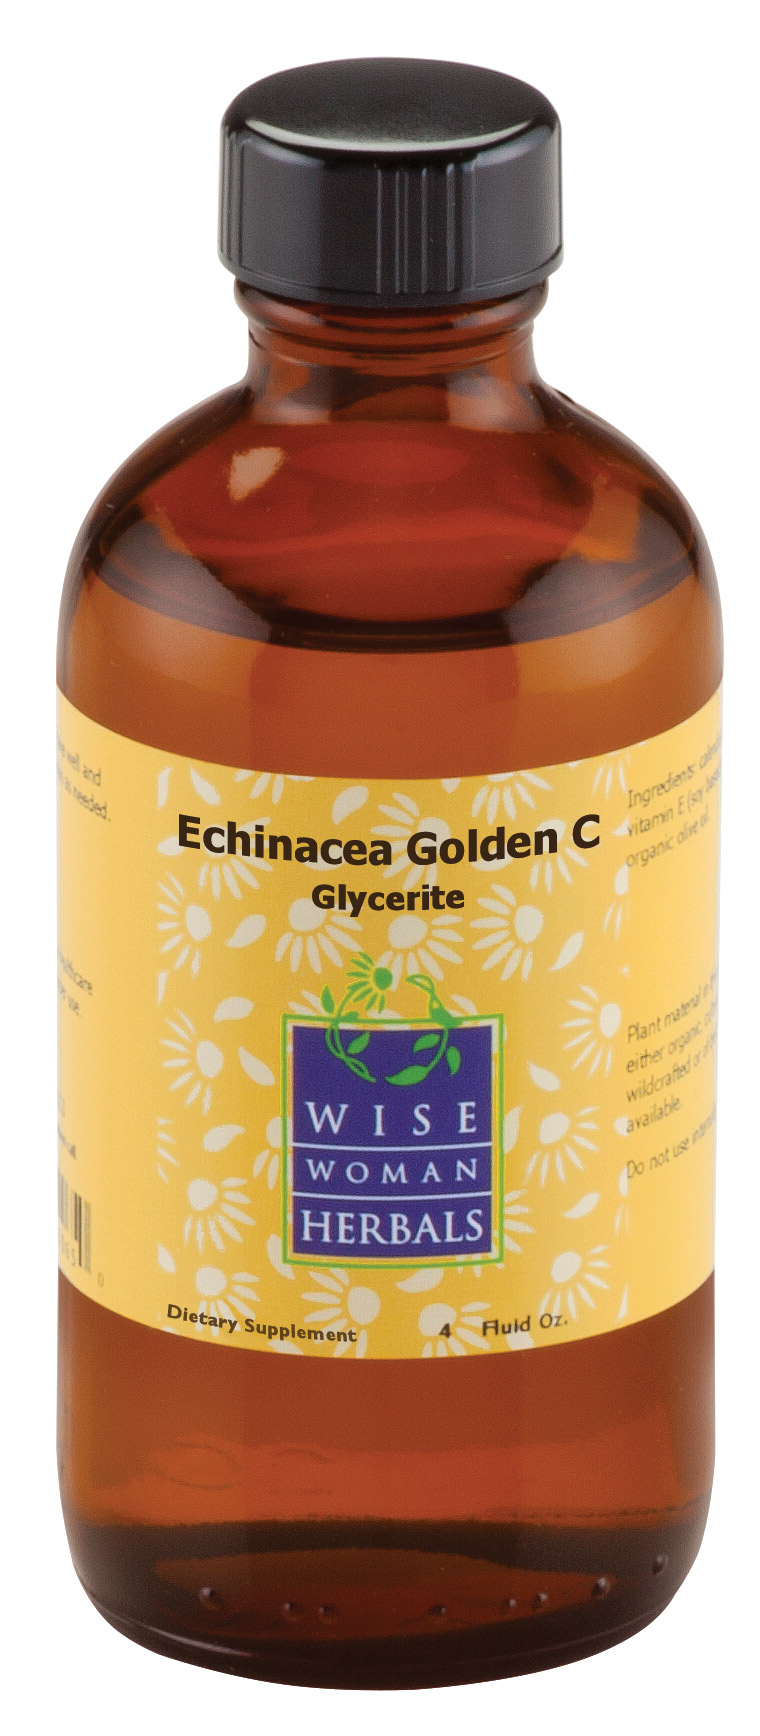 Echinacea Golden C Glycerite, 1 oz (Expires 9/15/19)